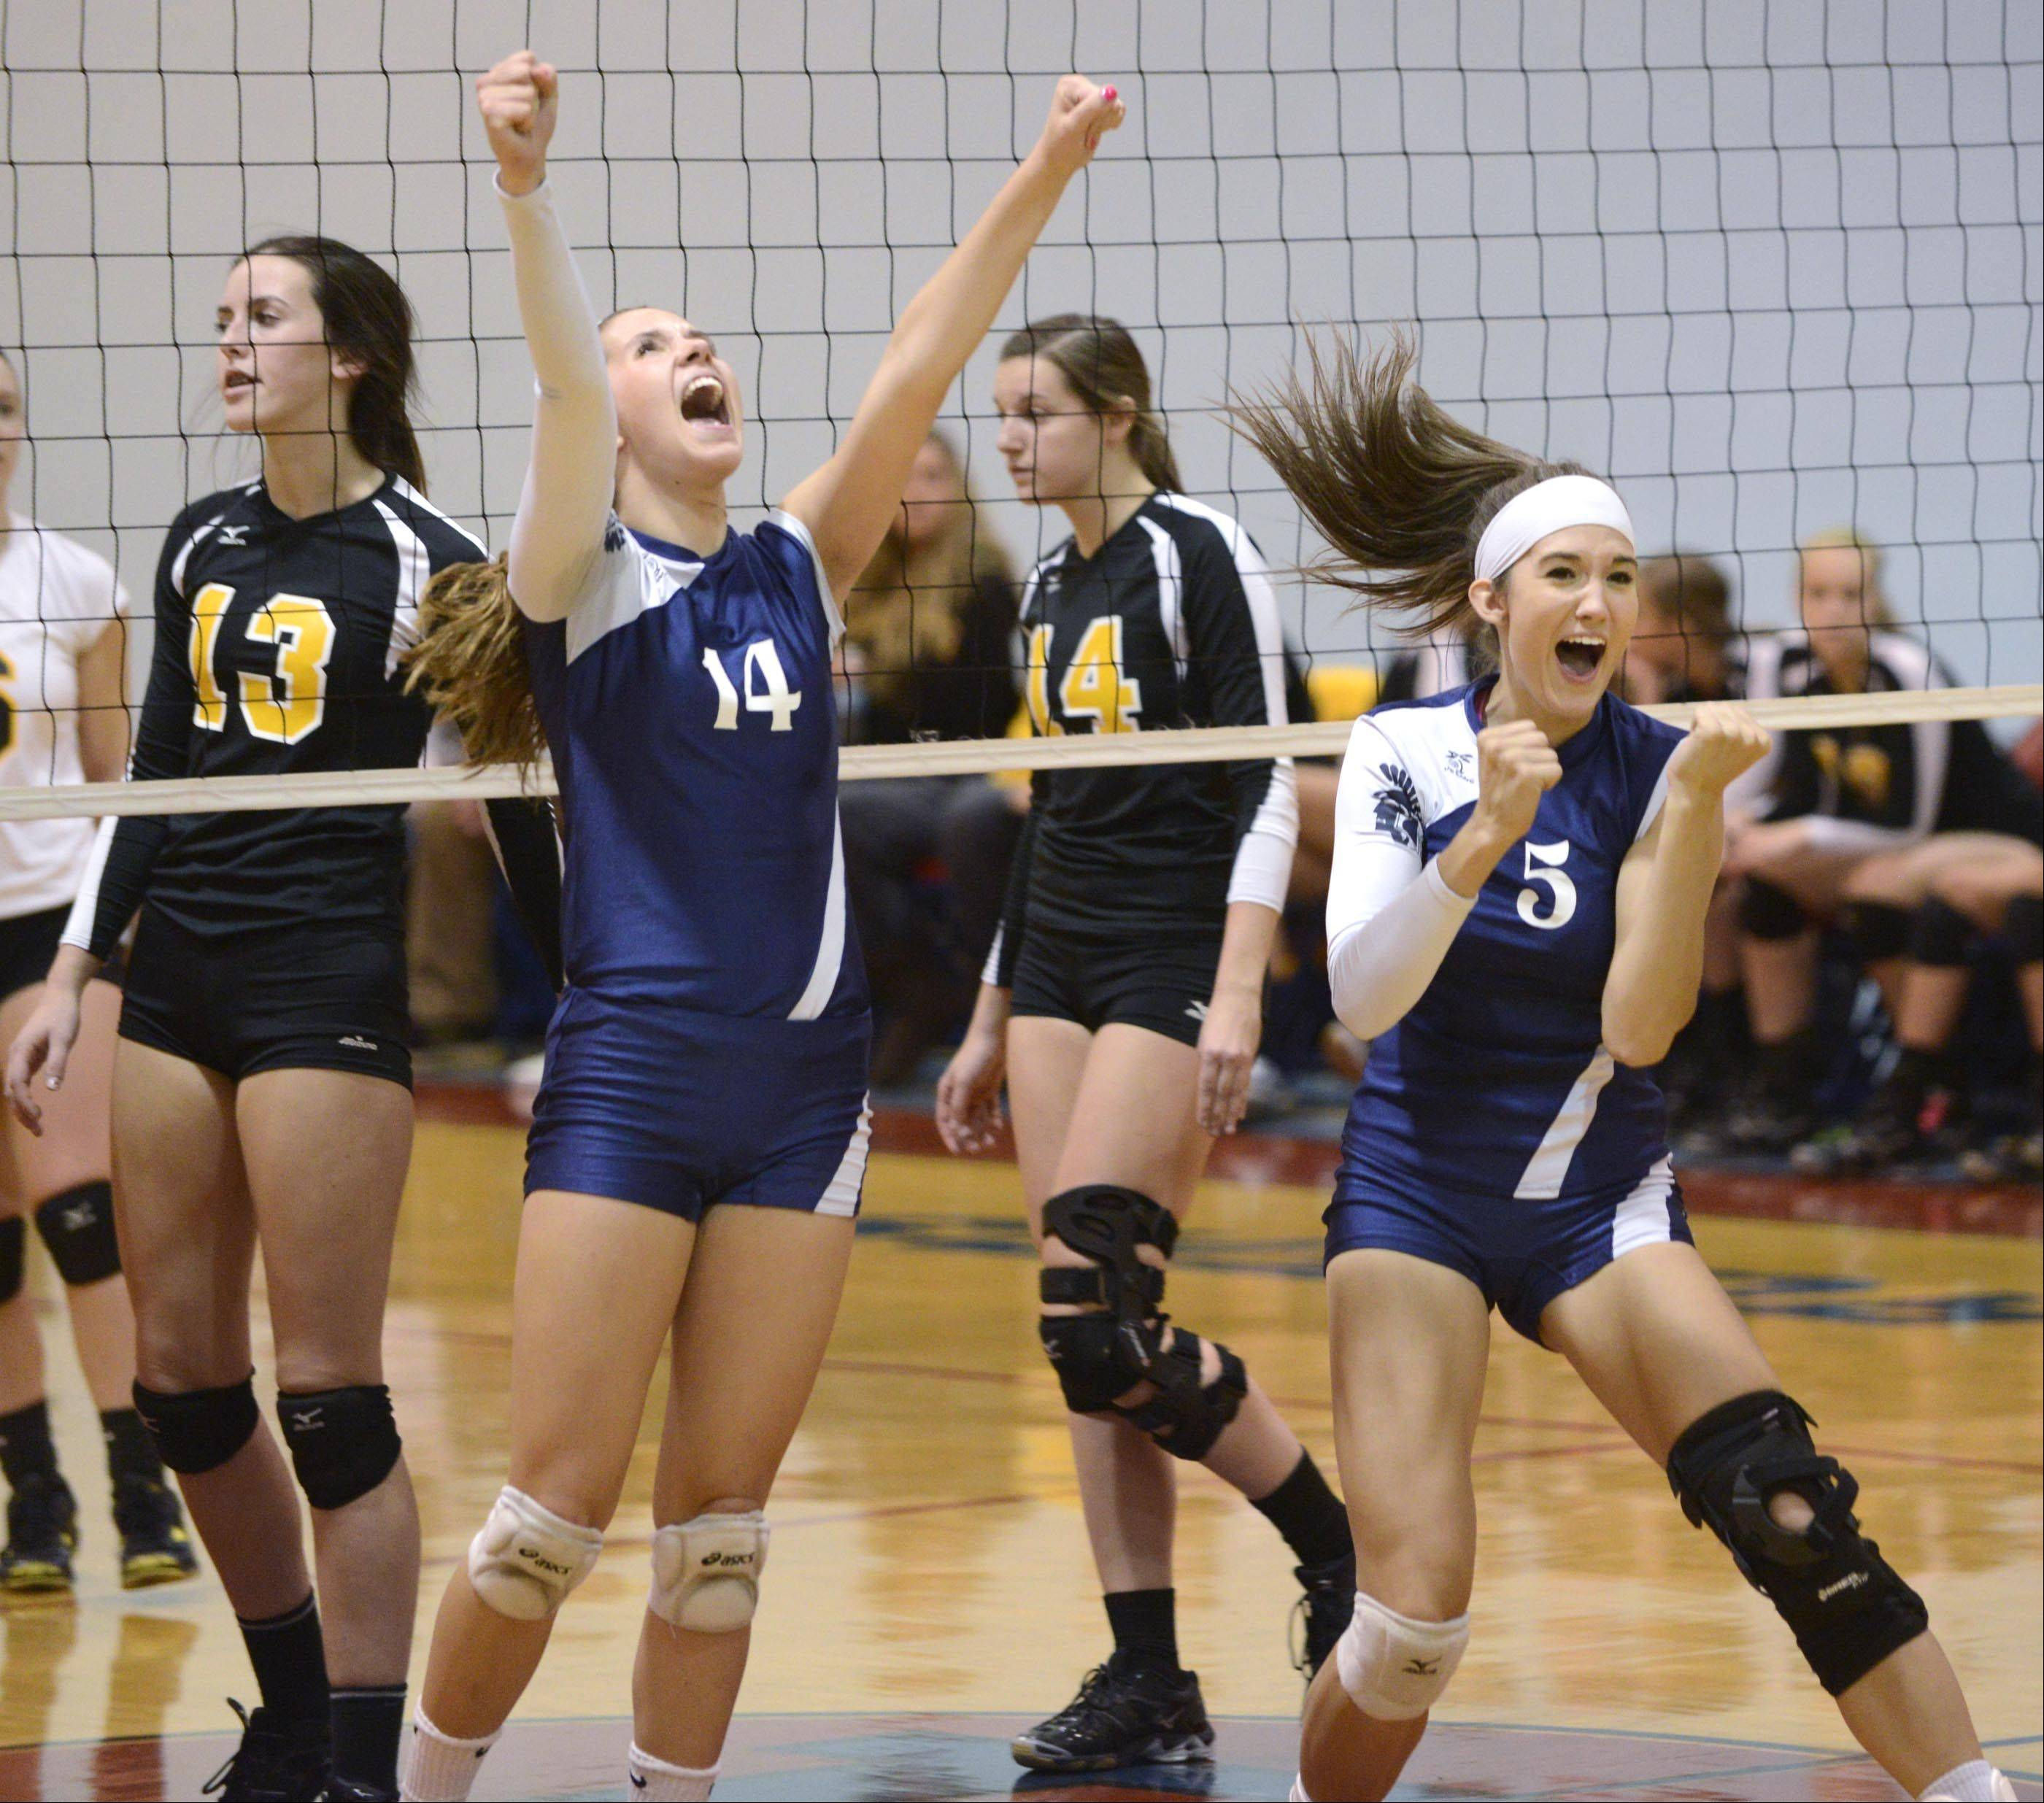 Cary-Grove�s Sarah Graham and Kayli Trausch, right, the winning point as Jacobs� Katie Mahoney and Allie Campbell react on the other side of the net during Monday�s volleyball match in Carpentersville.